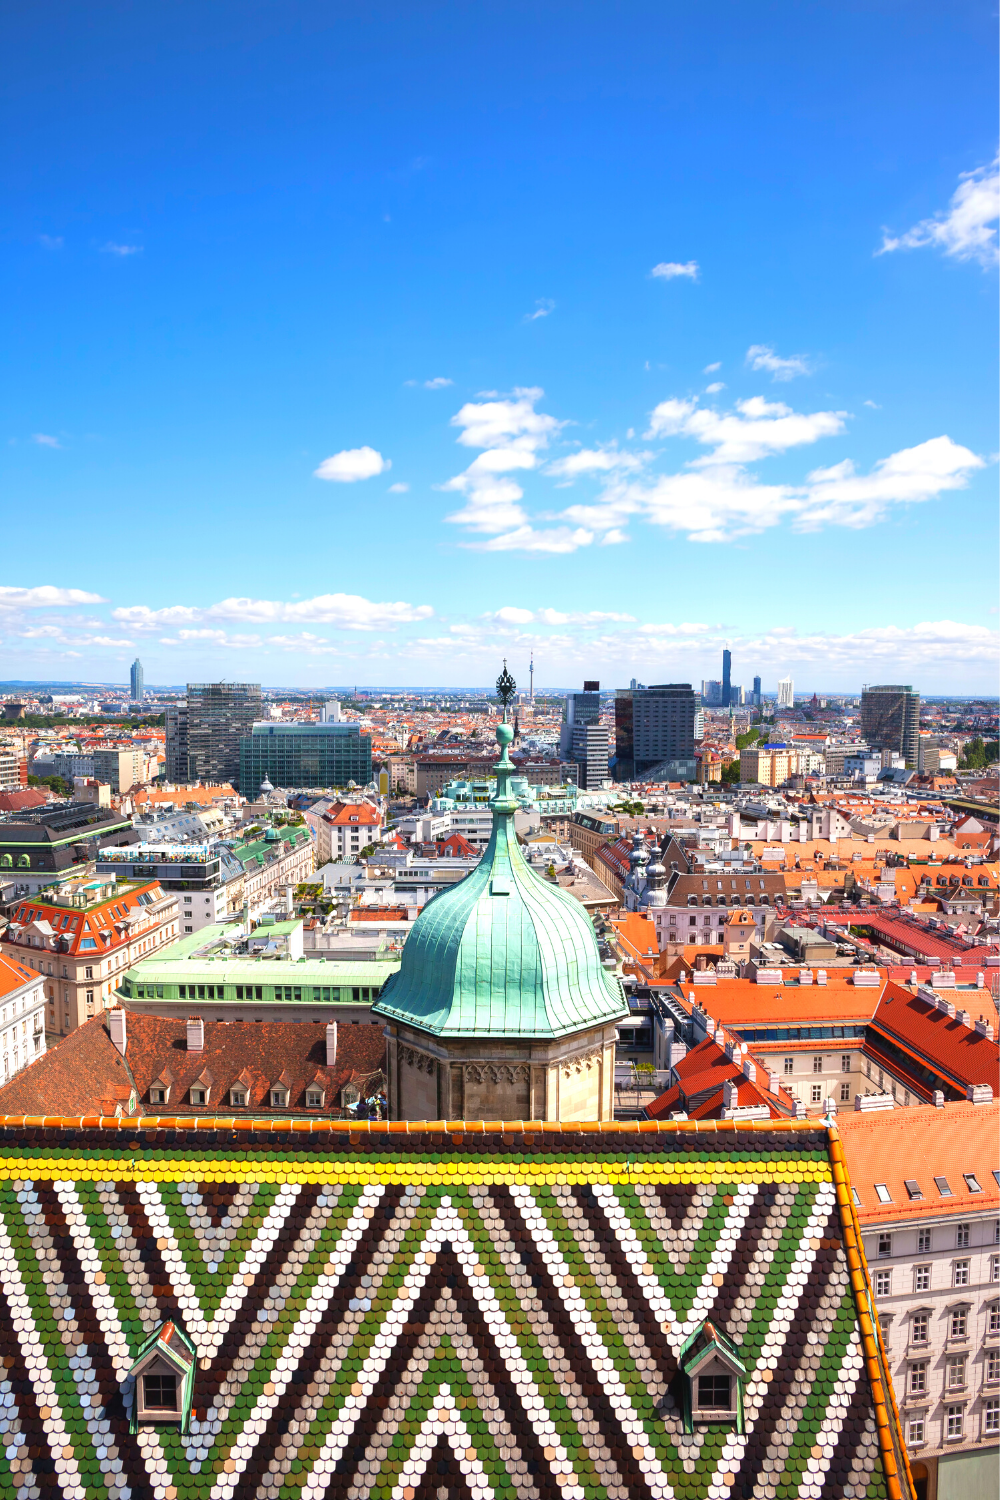 the colorful tiled roof and view from St. Stephen's Cathedral in Vienna